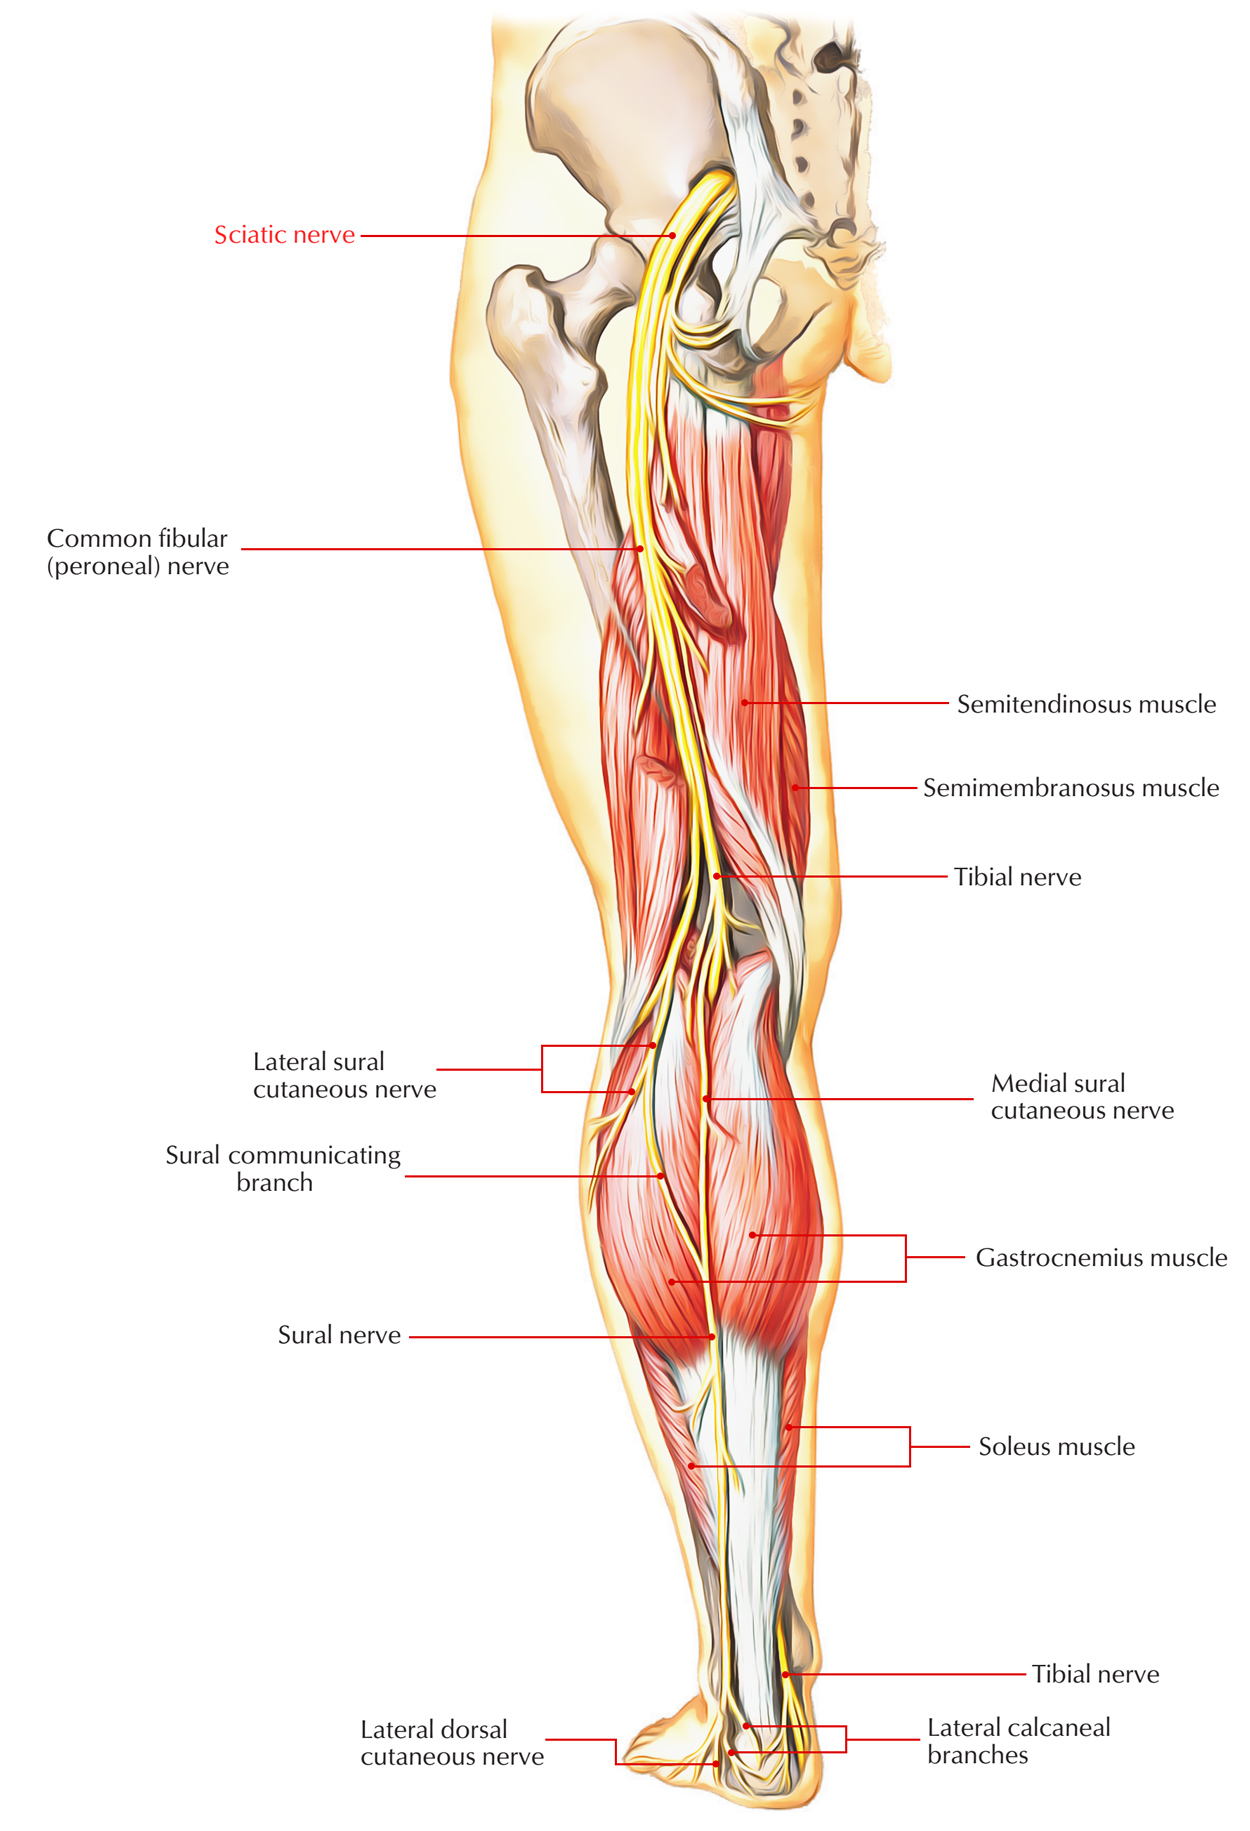 Easy Notes On 【Sciatic Nerve】Learn in Just 4 Minutes!